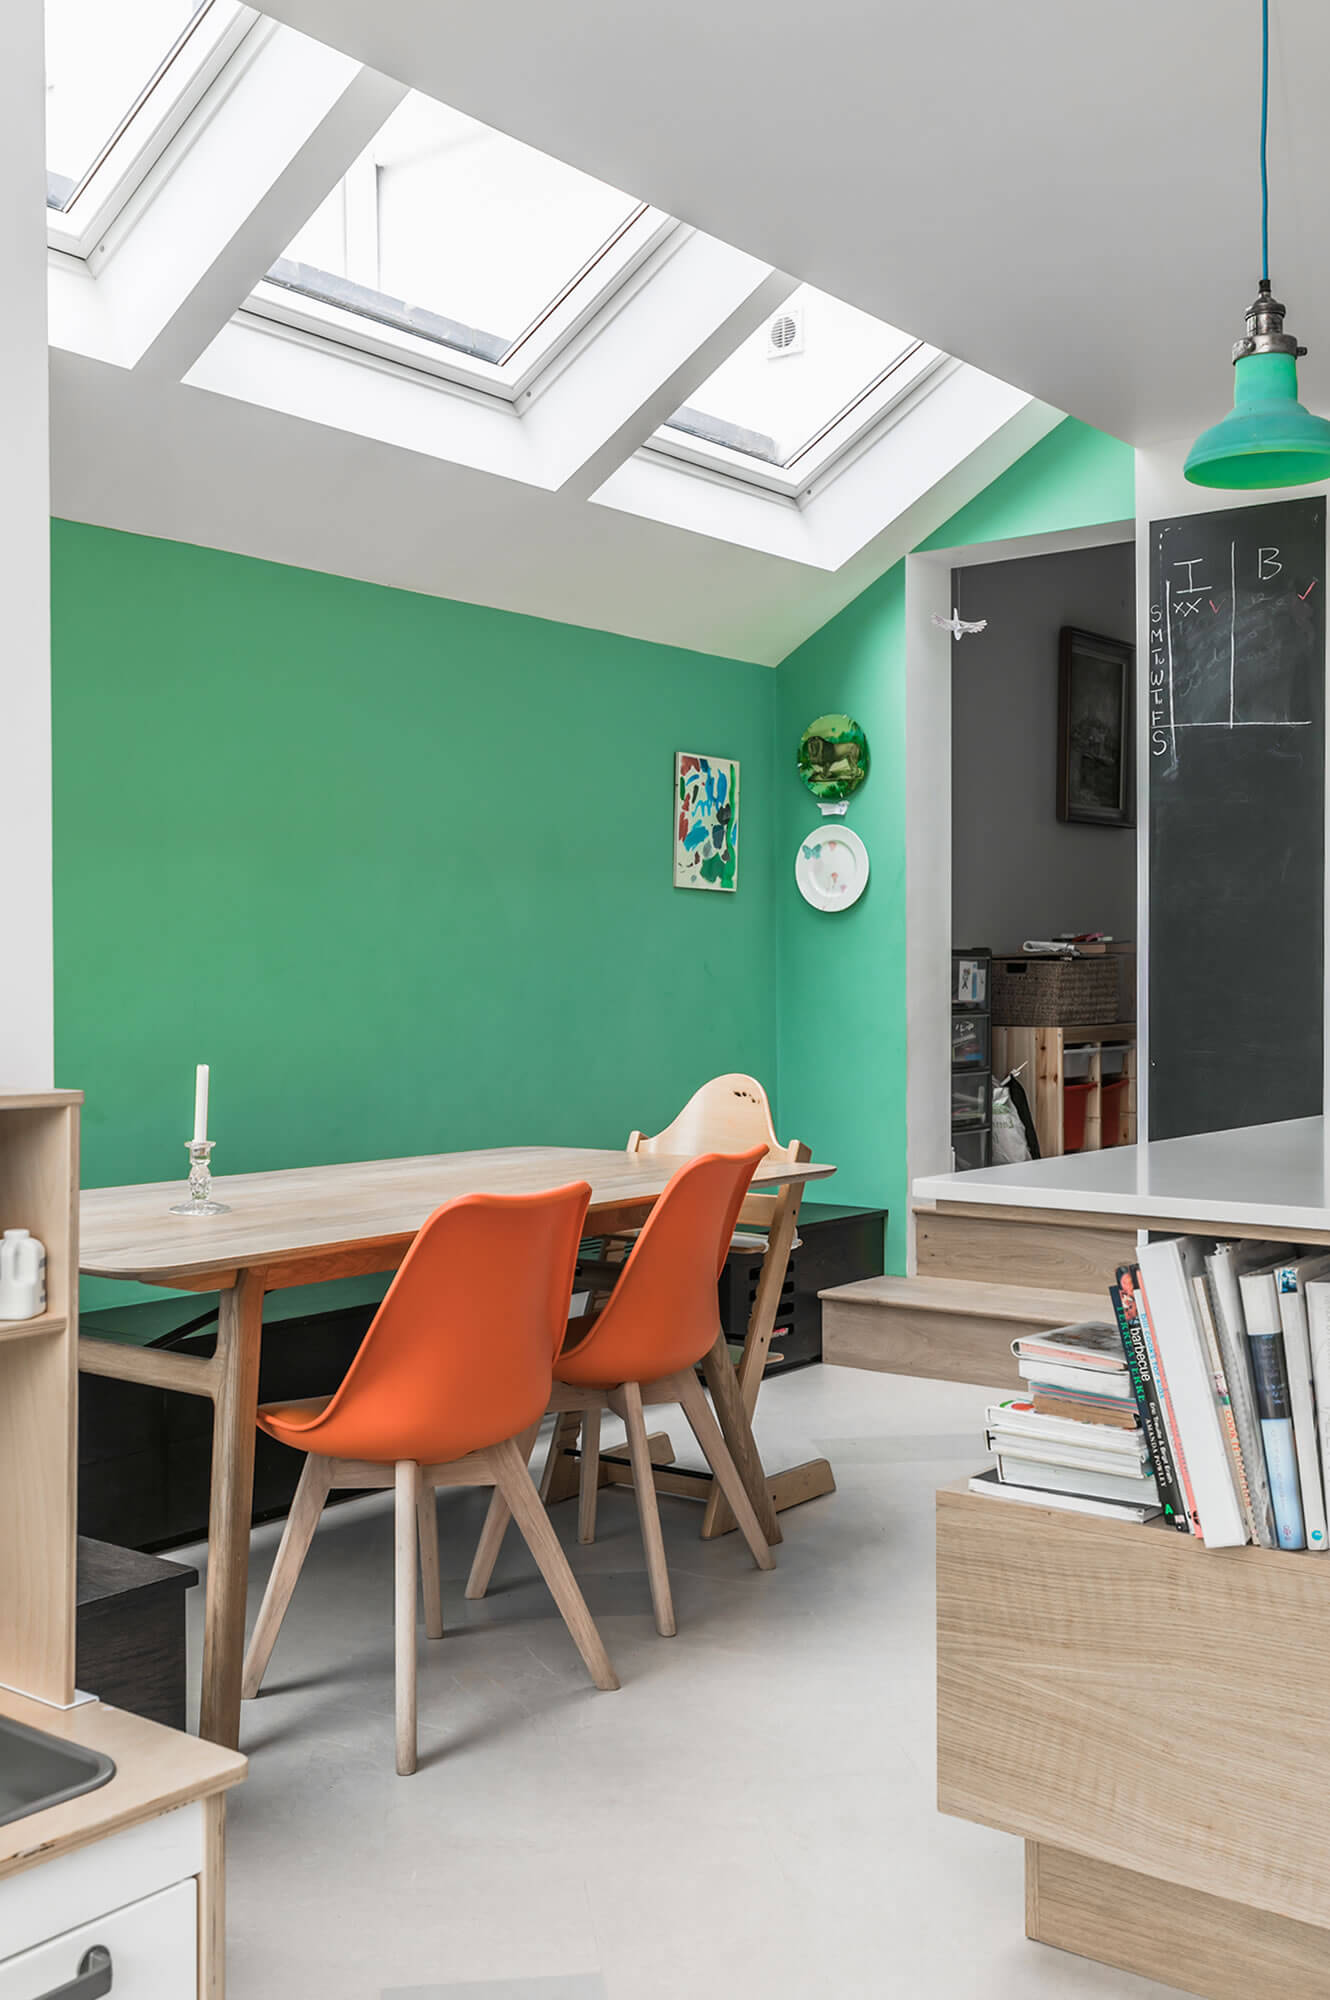 archangels-bright-and-colourful-kitchen-skylights.jpg